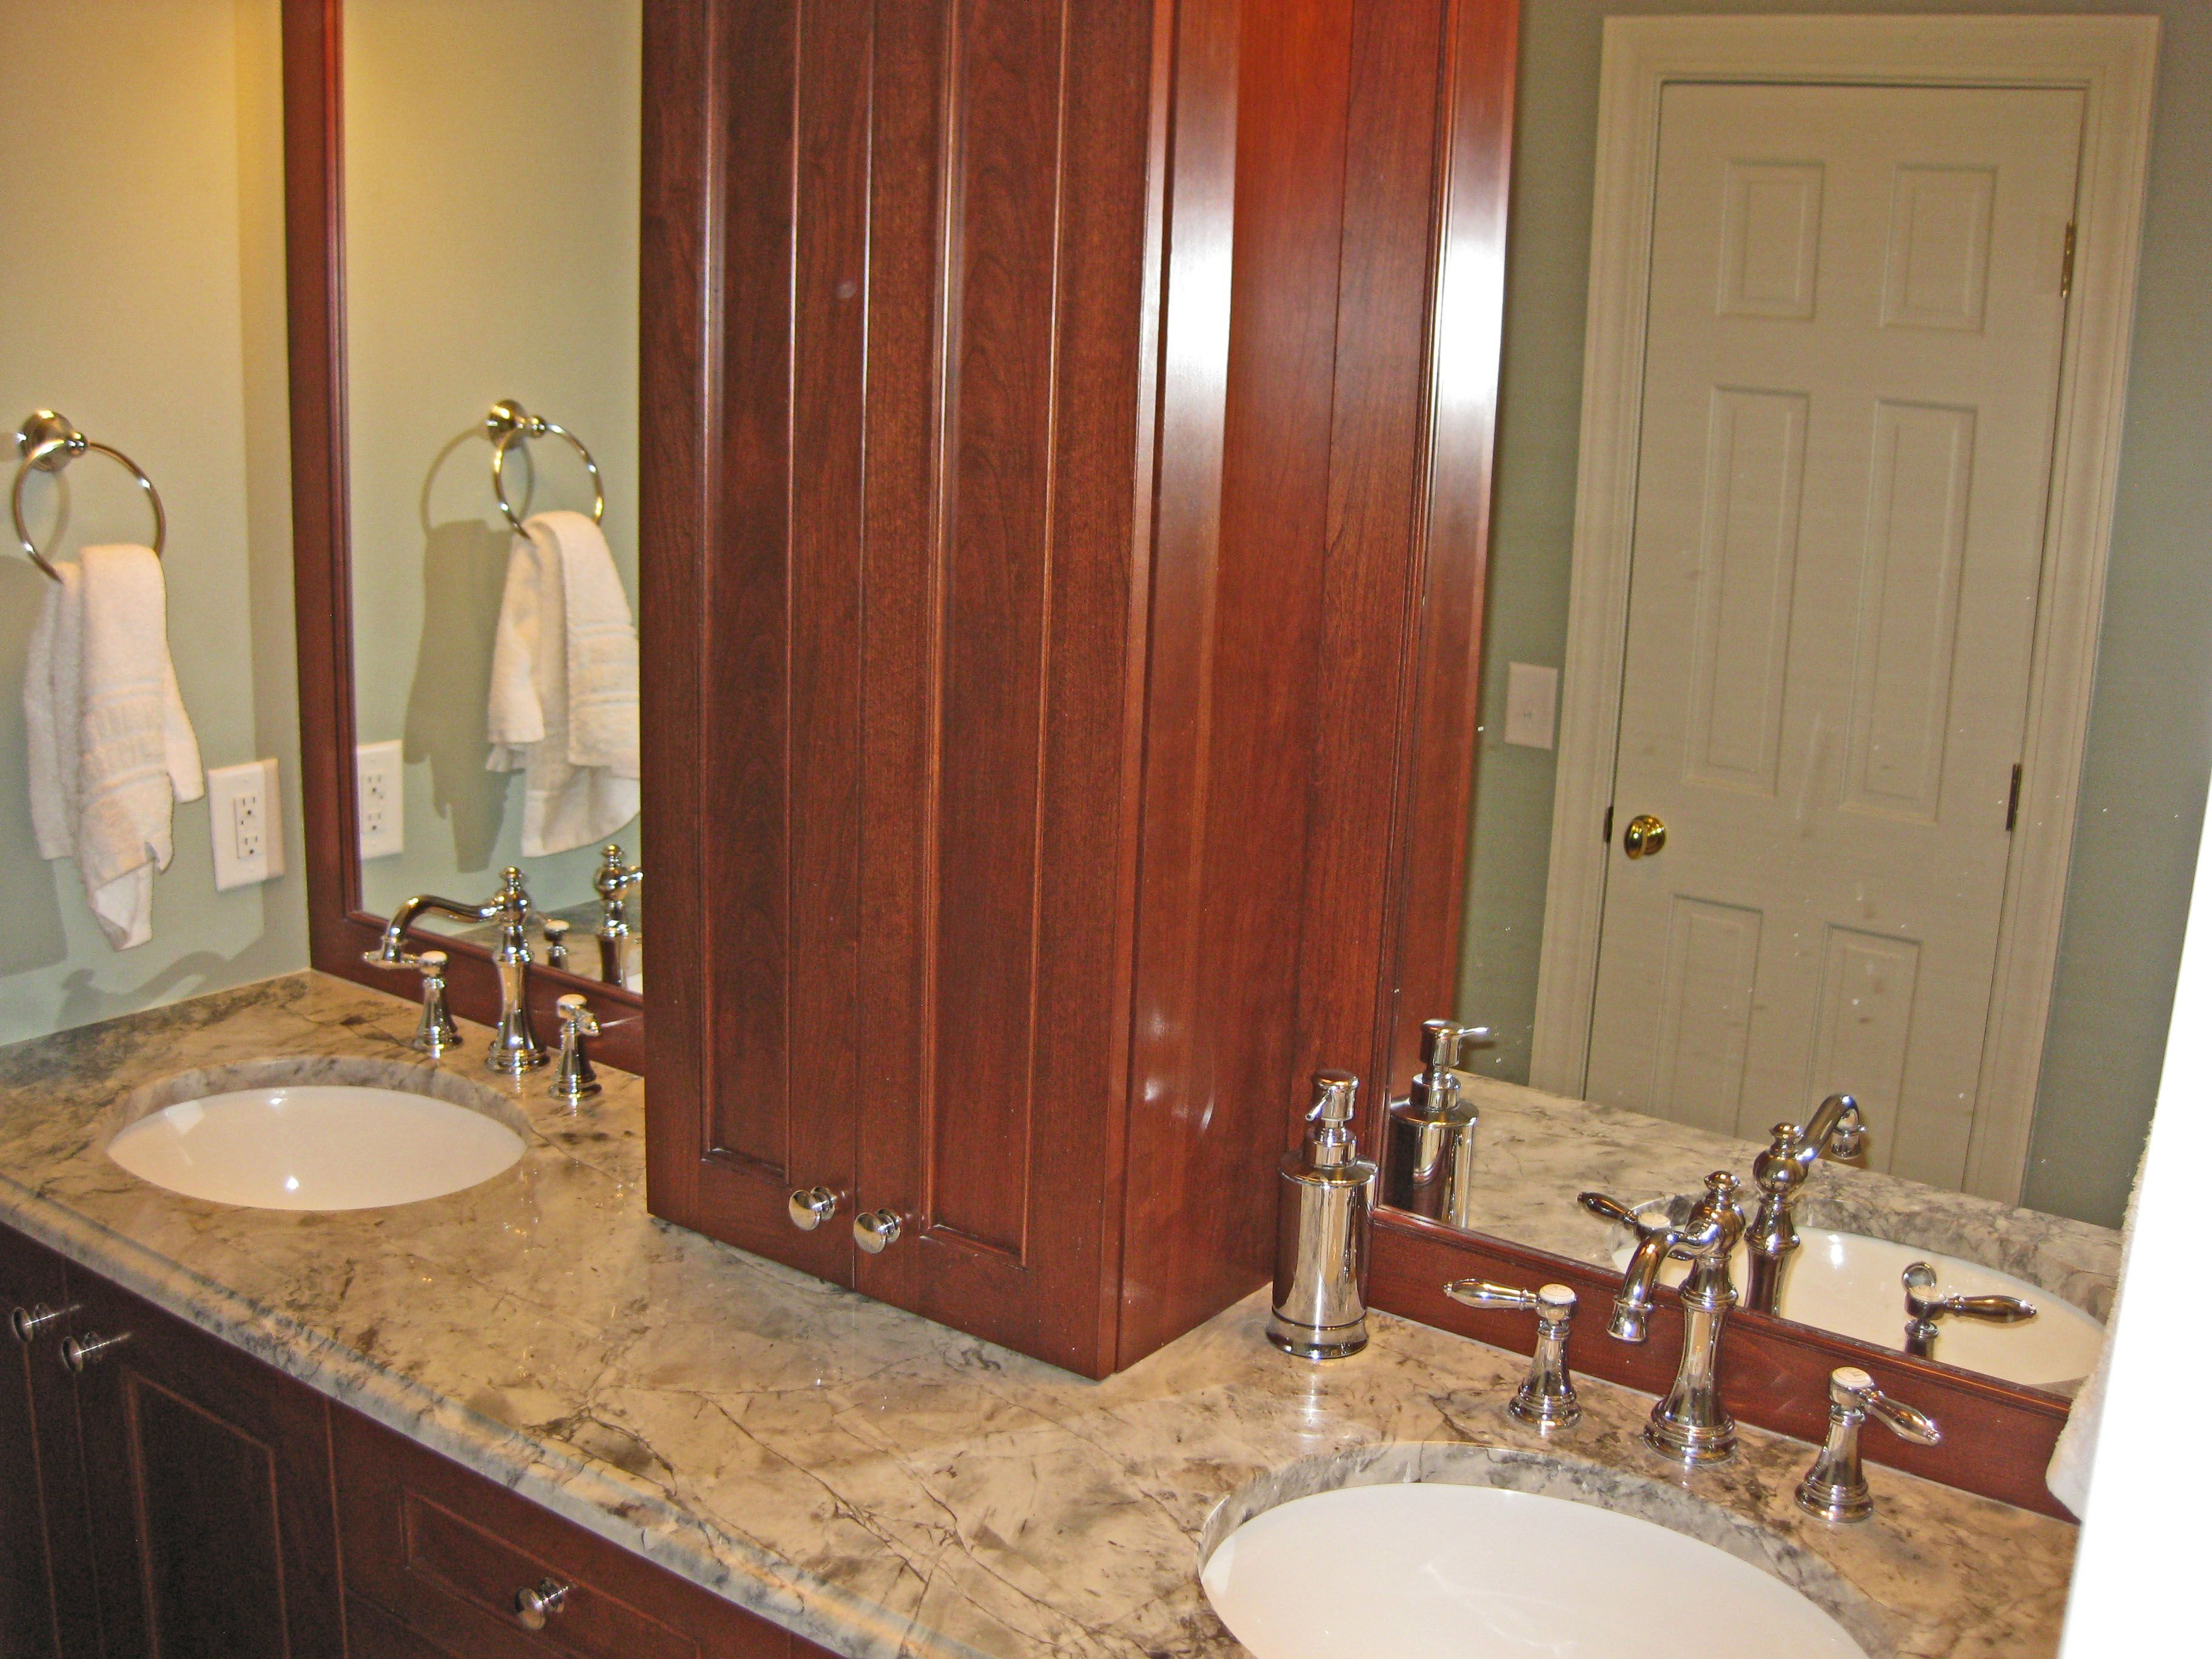 Master bathroom cabinetry cabinets are stained cherry for Master bathroom countertops